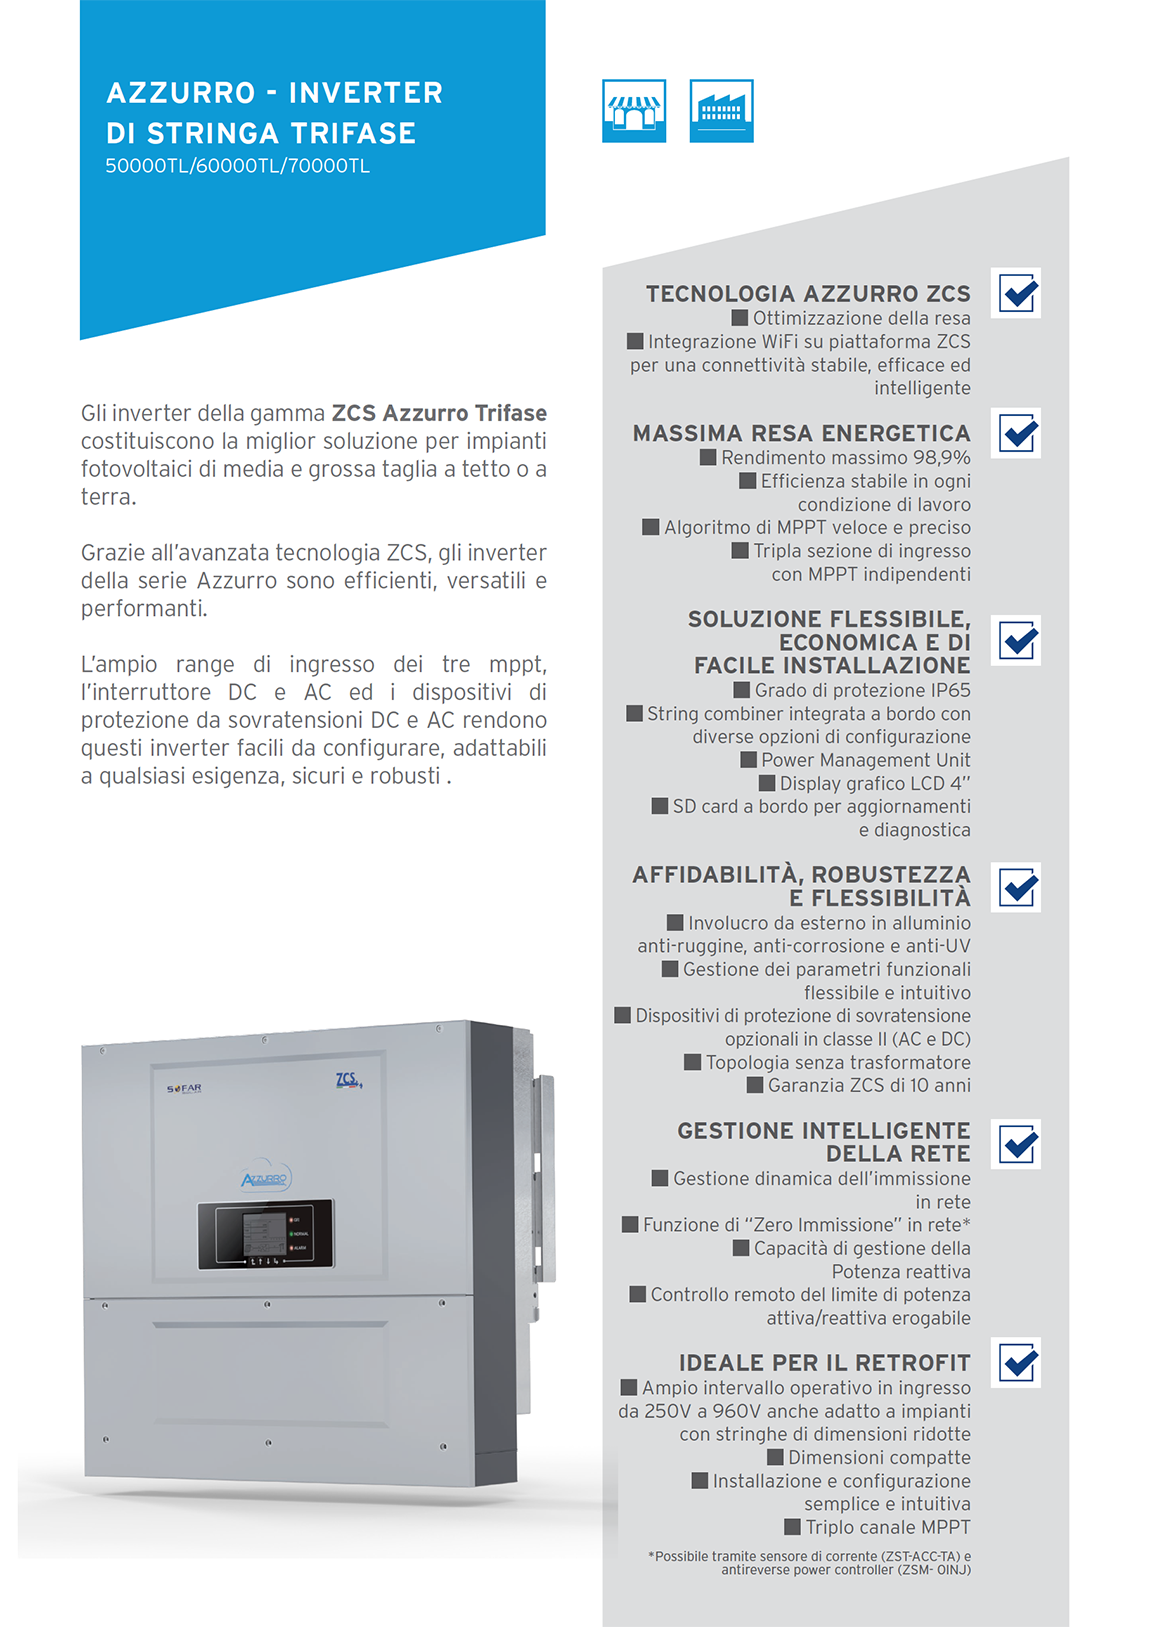 ZCS Inver trifase 50000-70000 TL - 2